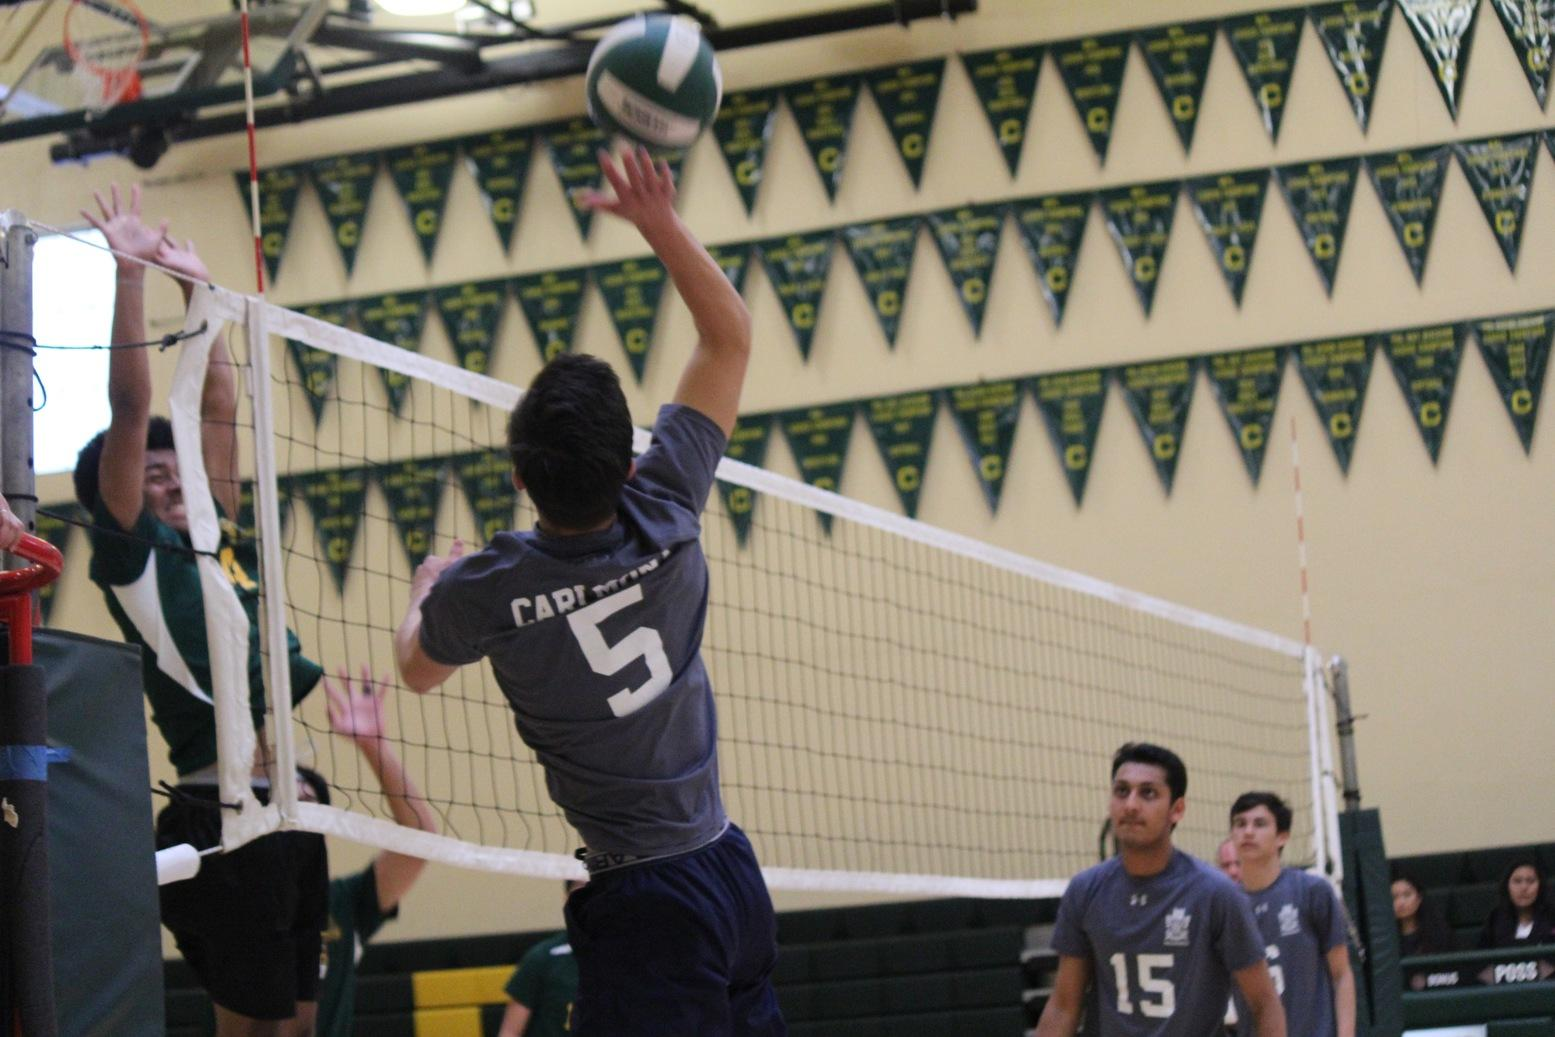 Jason Jung, a senior hits the ball over the net earning a point for the Scots